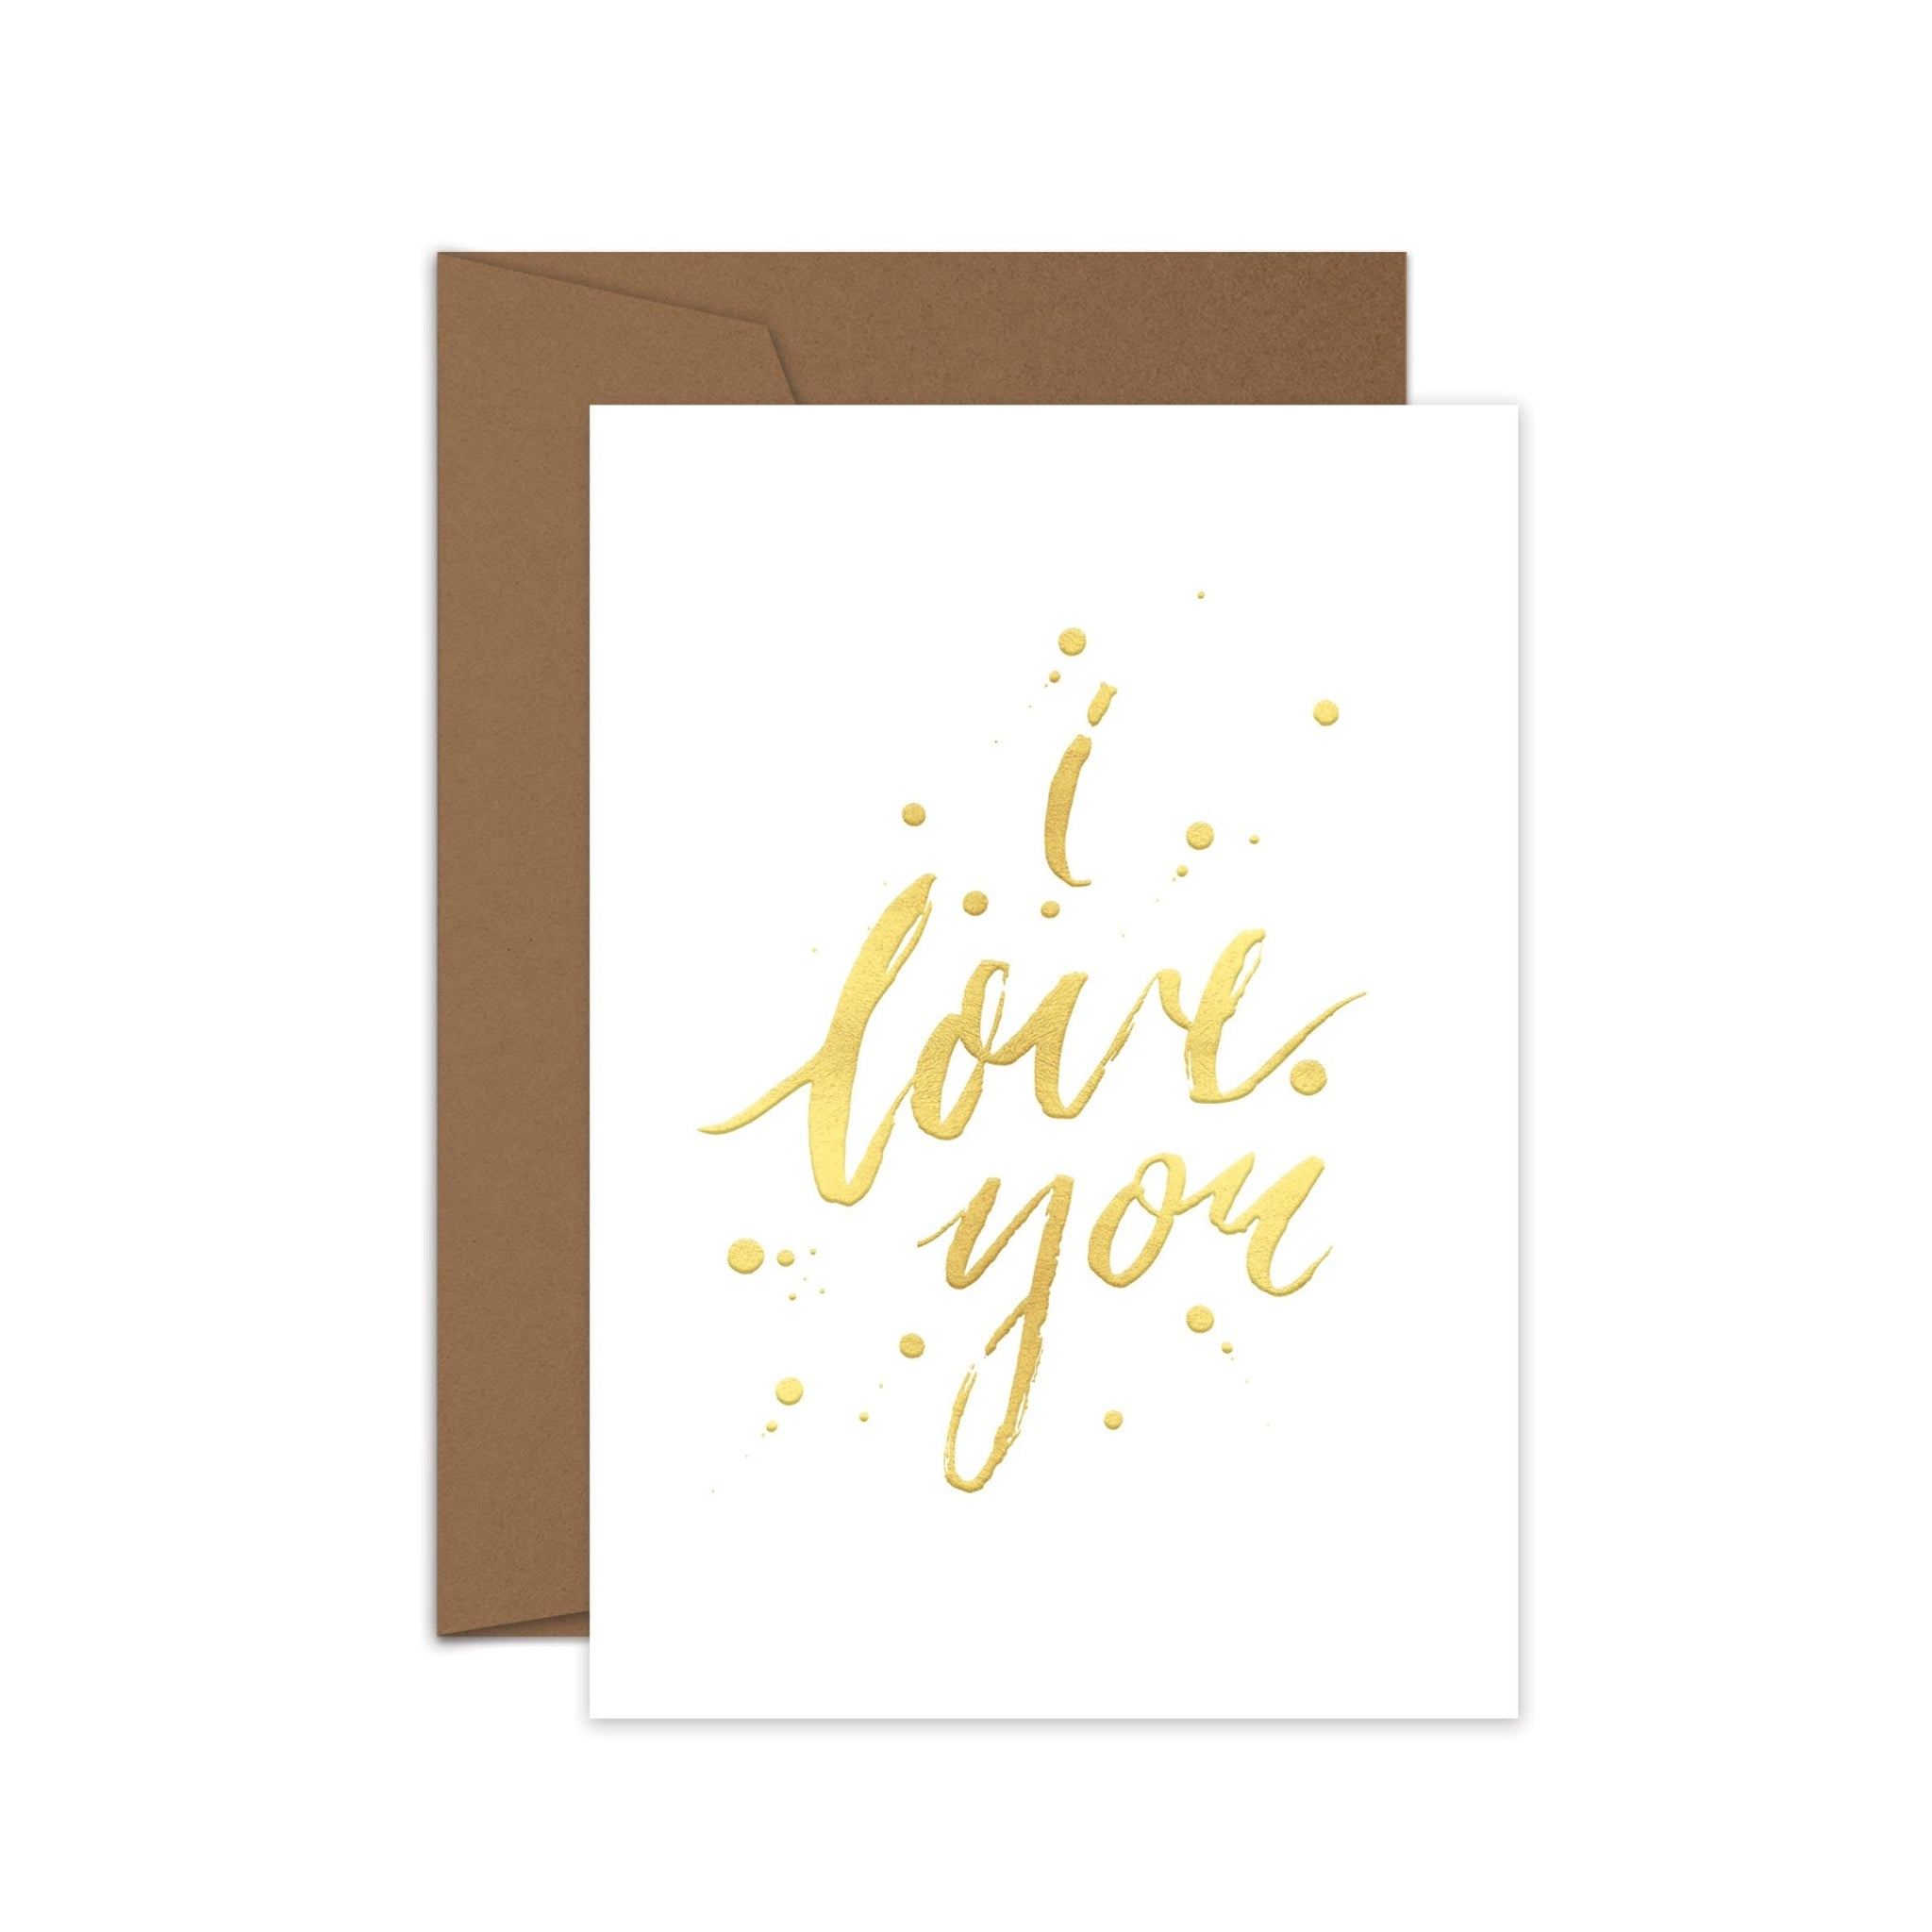 I love you - Card